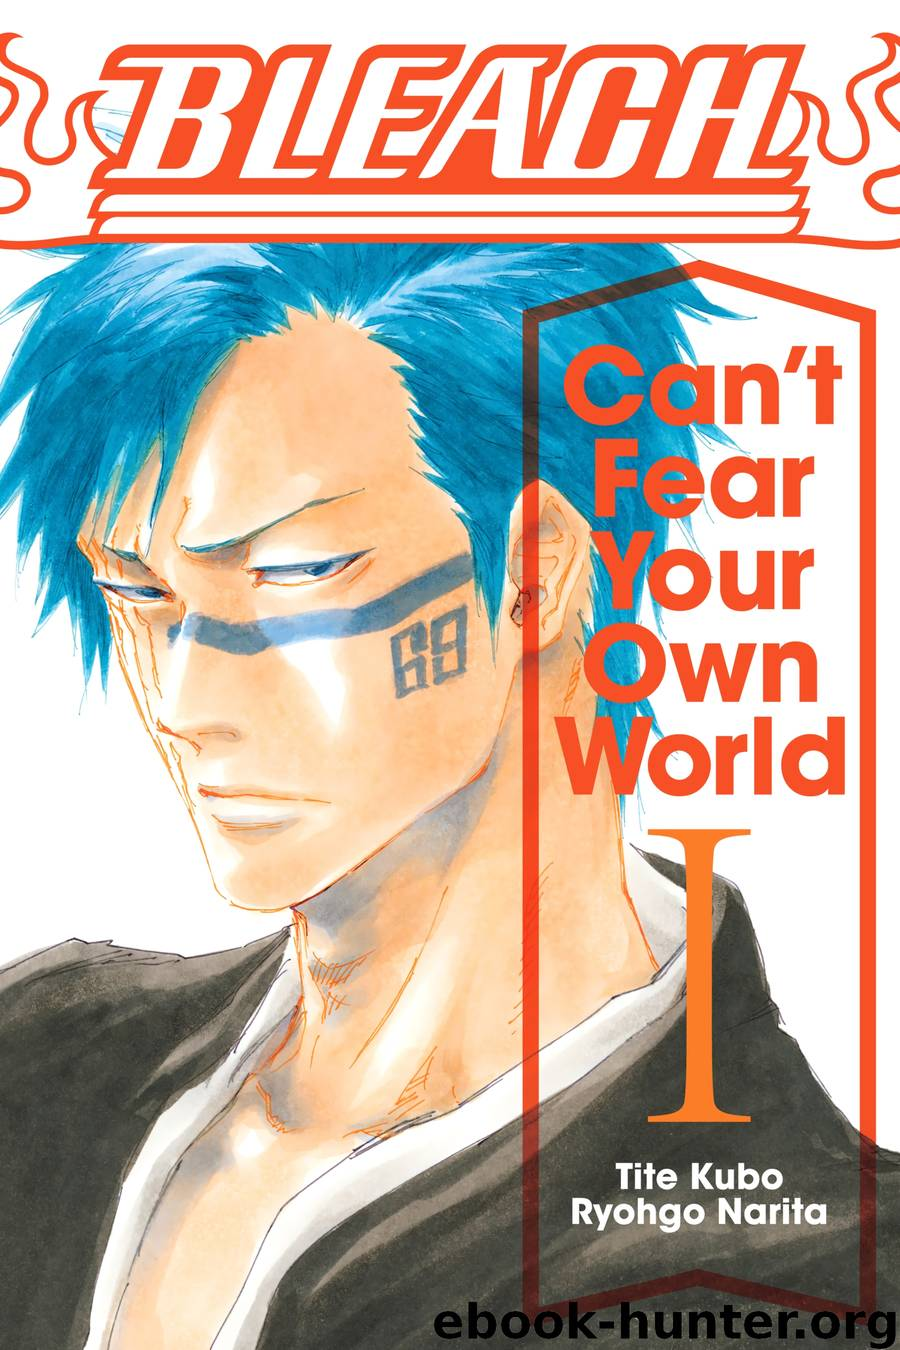 Bleach: Can't Fear Your Own World, Vol. 1 by Tite Kubo Ryohgo Narita